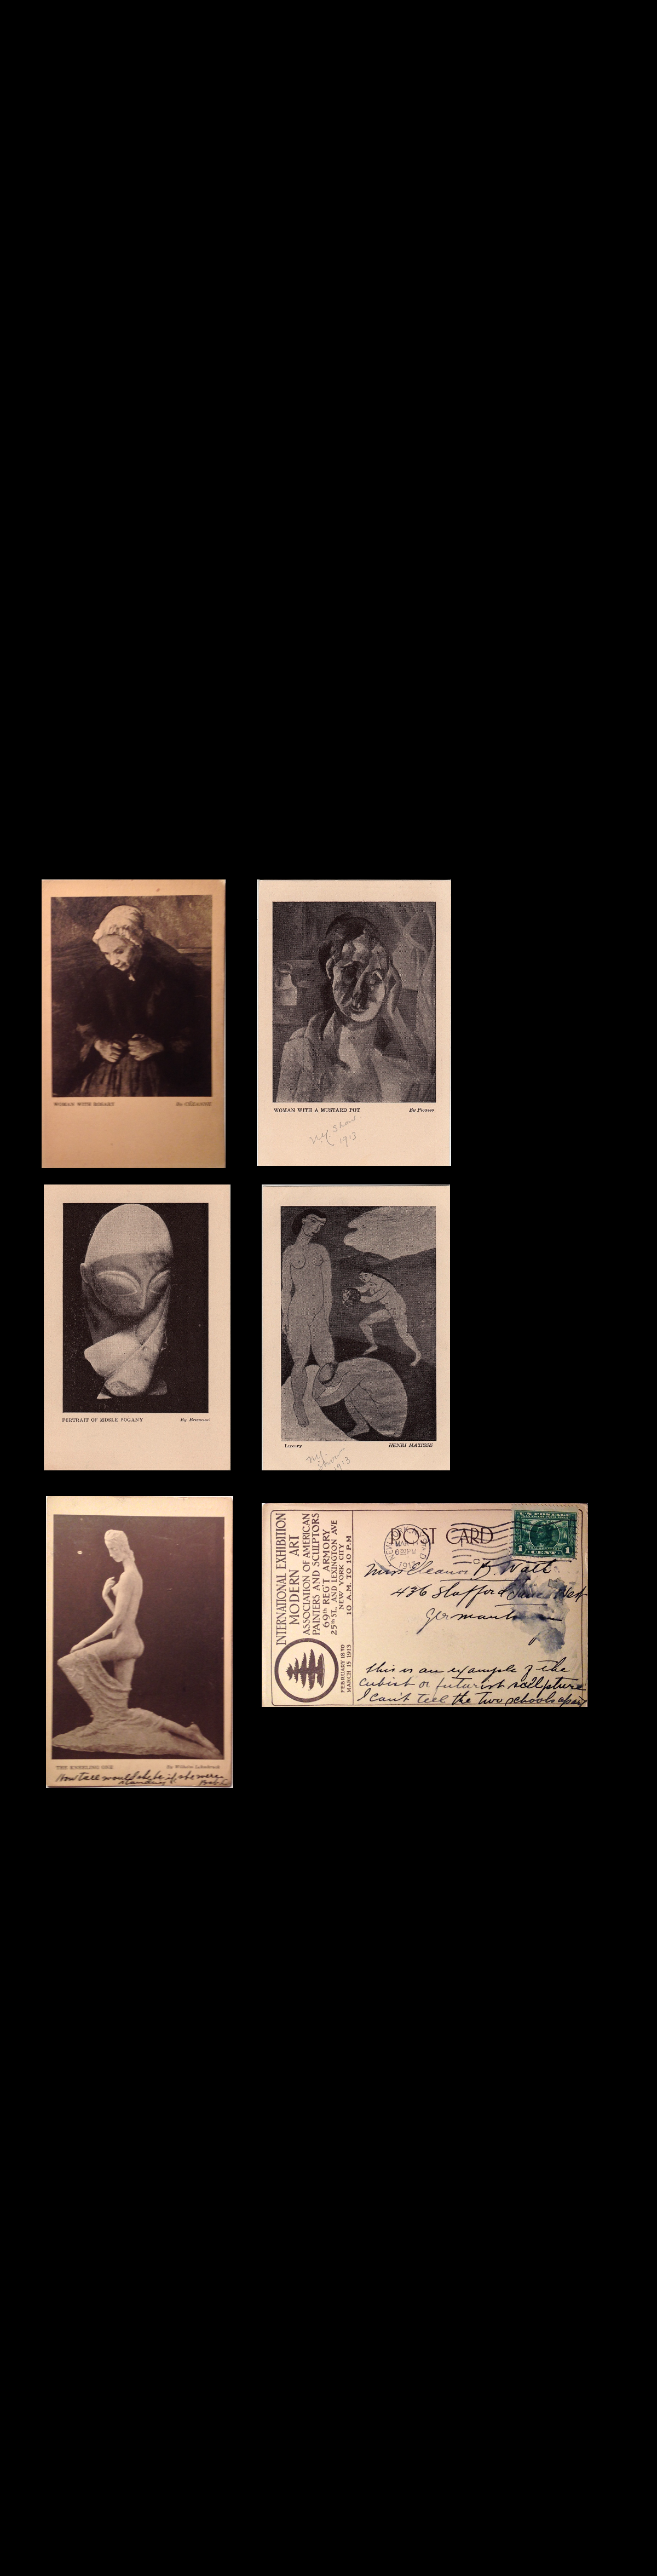 """1913 Armory Show"" , Exhibition Cards,  Brancusi, Cezanne, Lehmbruck, Matisse, Picasso."